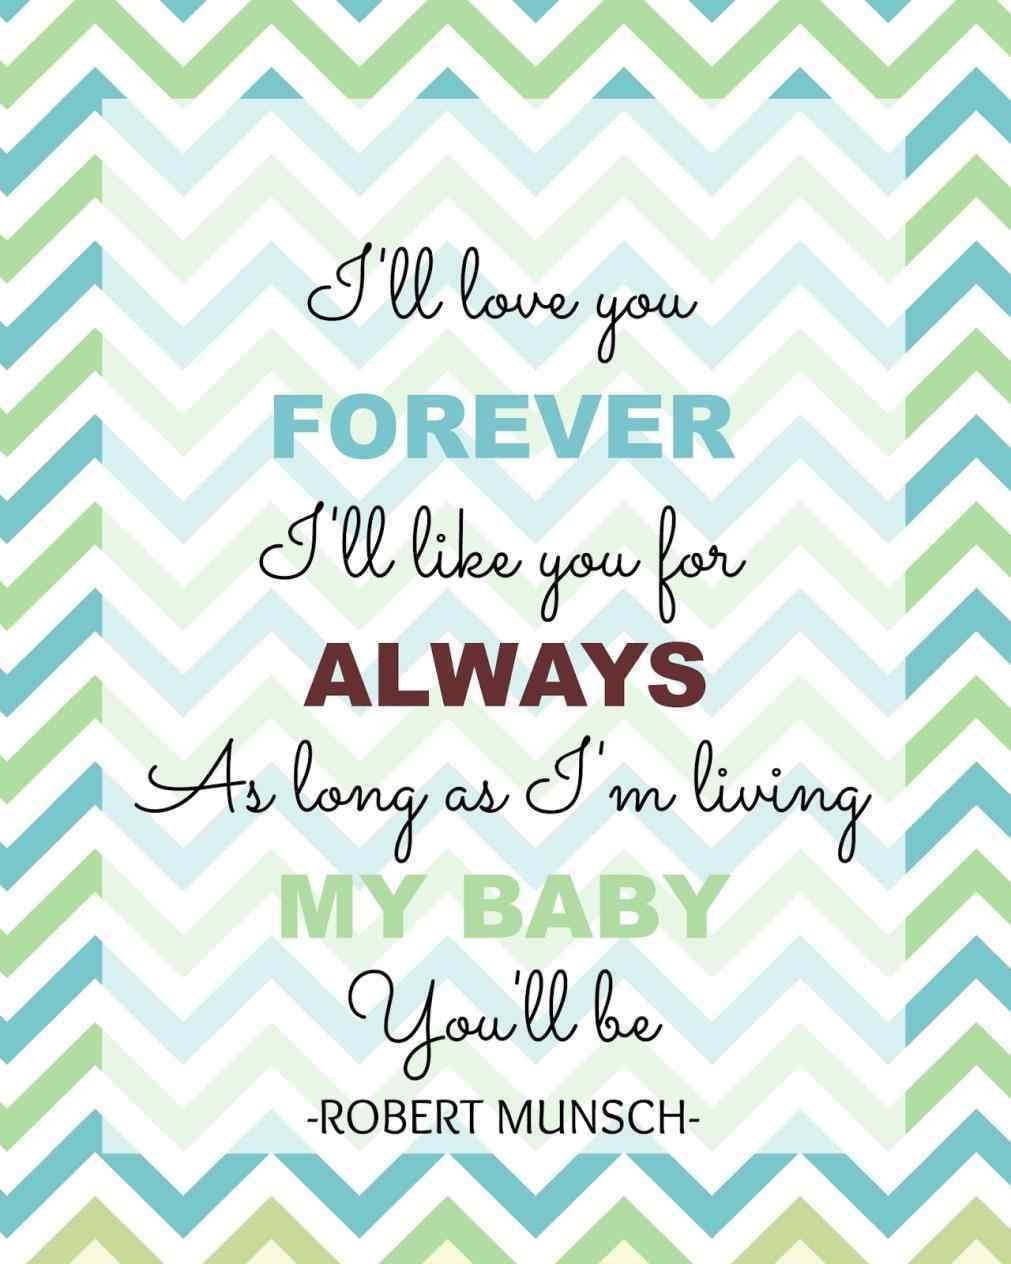 Long Ium Quotes Images I Ll Book Love I Love You Baby Forever And Always Quotes Images I Ll You Forever Book So If You Want To Get This Awesome P O